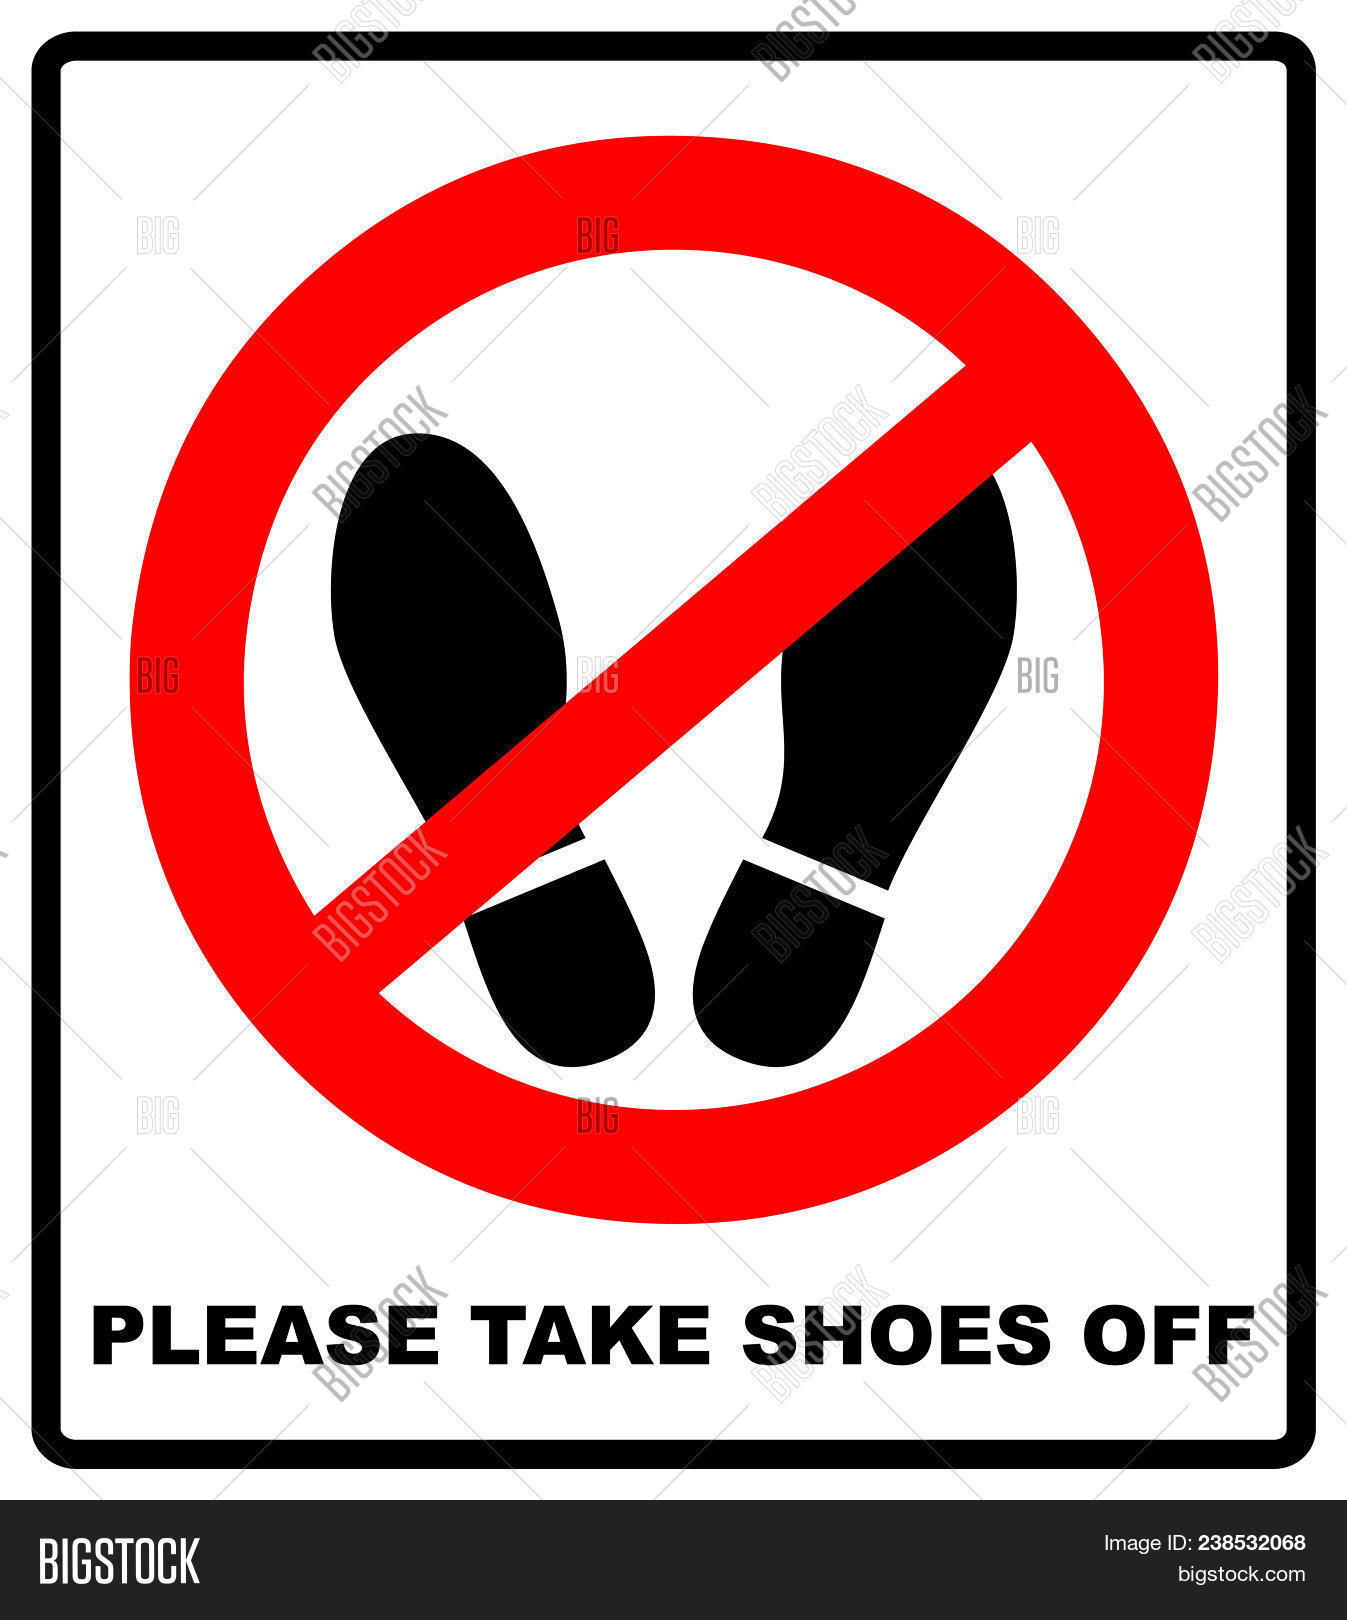 graphic about Please Take Off Your Shoes Sign Printable identify You should Consider Sneakers Off Graphic Picture (Absolutely free Demo) Bigstock